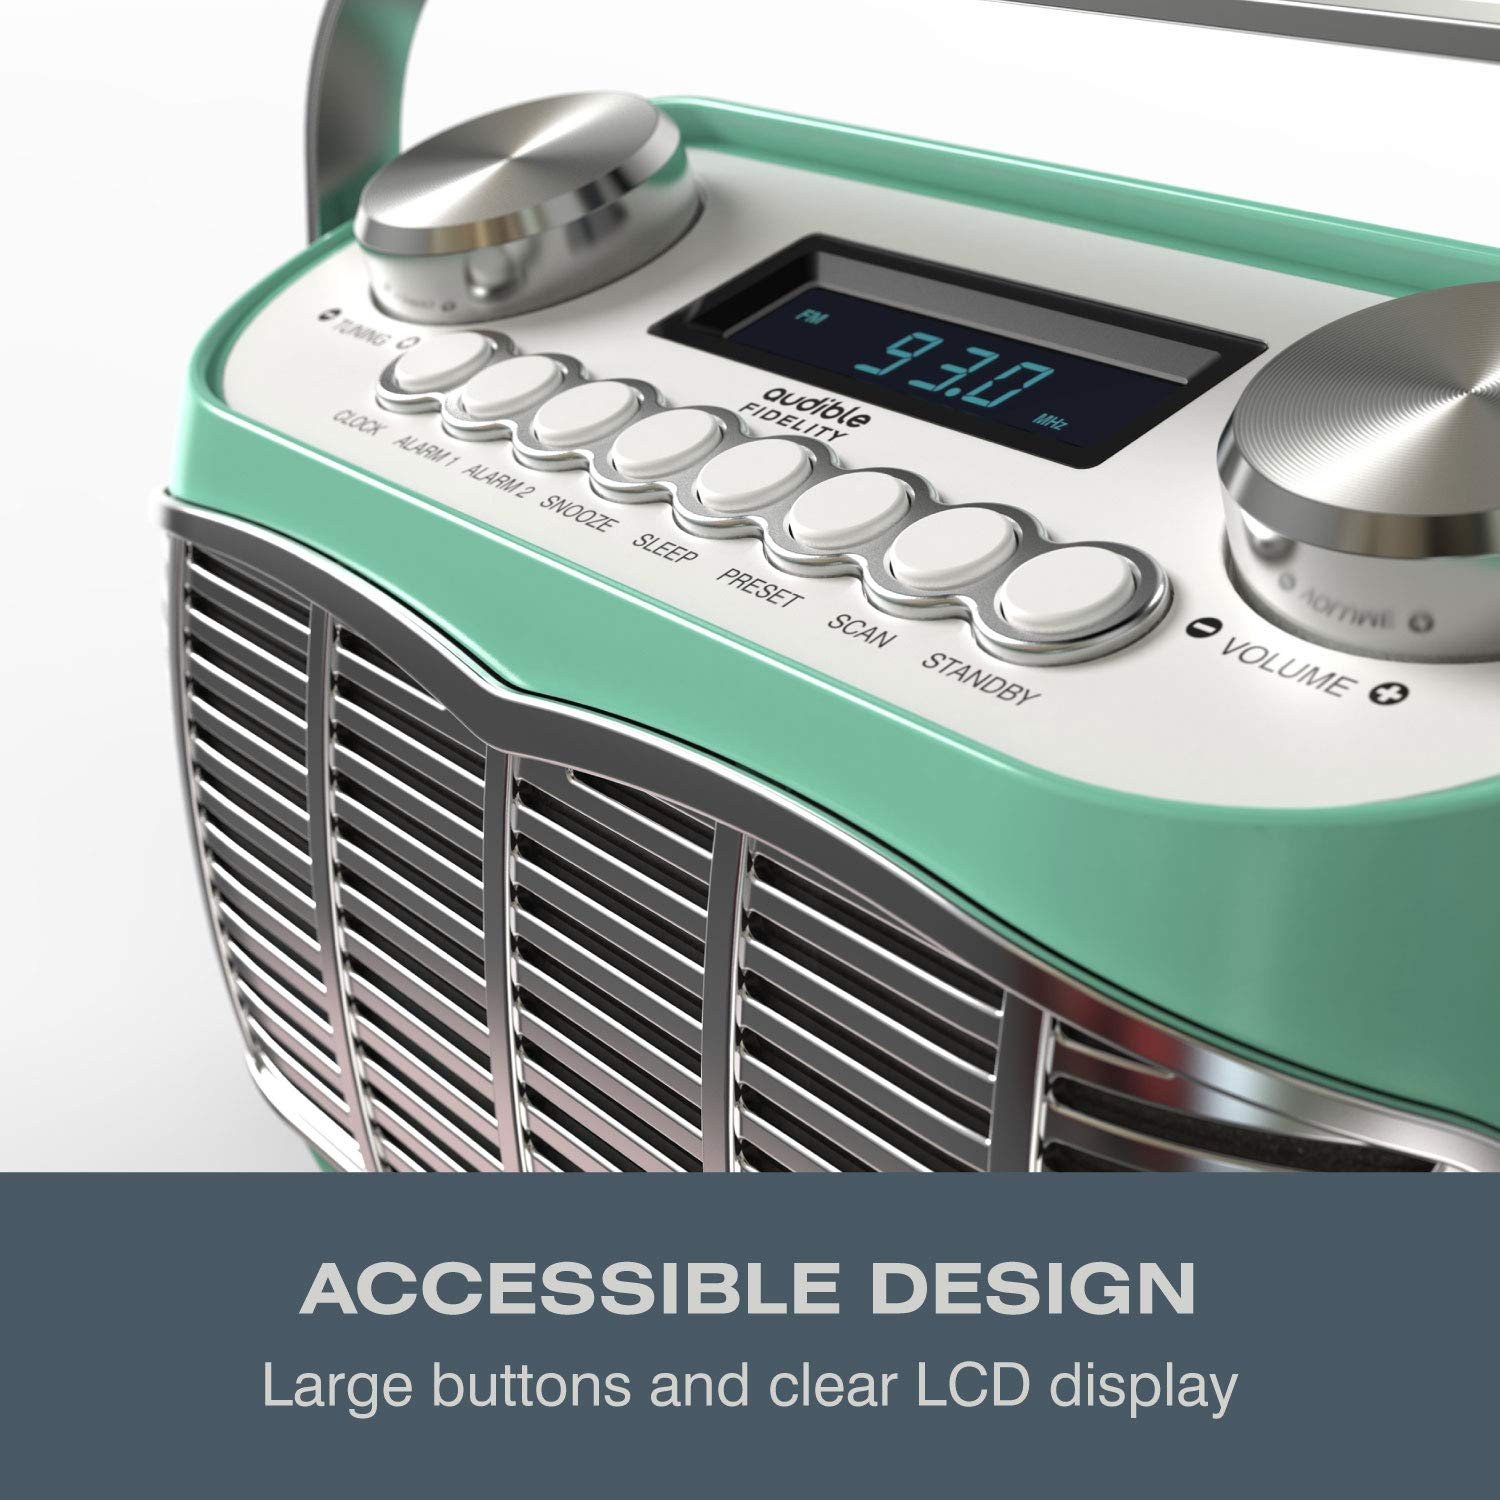 Detroit, FM AM Radio Alarm Clock Bedside Mains Powered Or Battery FM Retro Radio with LCD Display Clock Radio (Green)